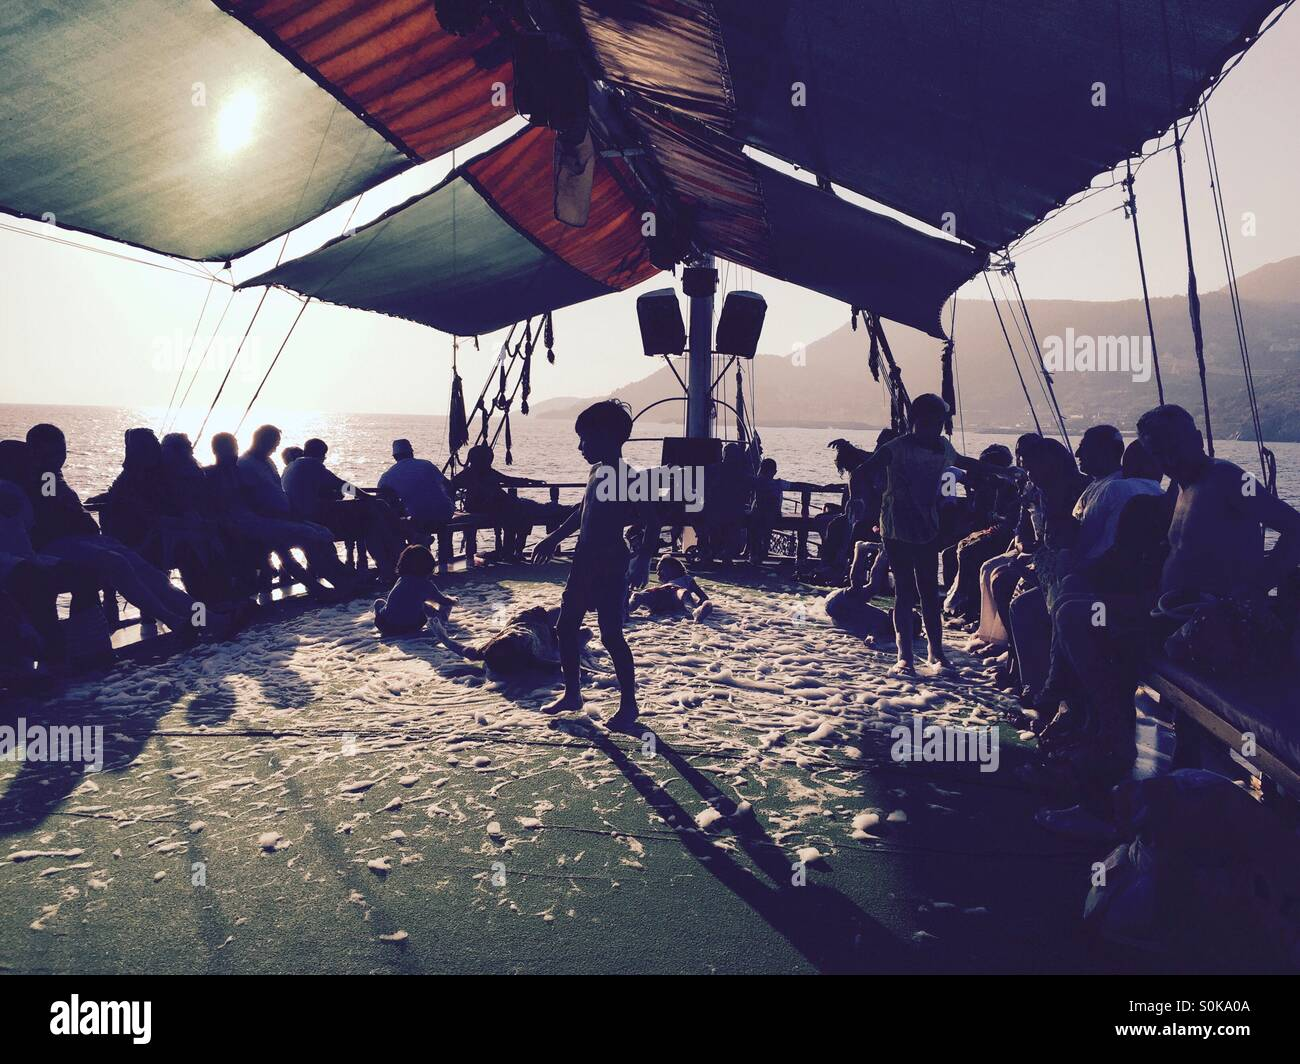 Children enjoying soap party on sailing boat - Stock Image